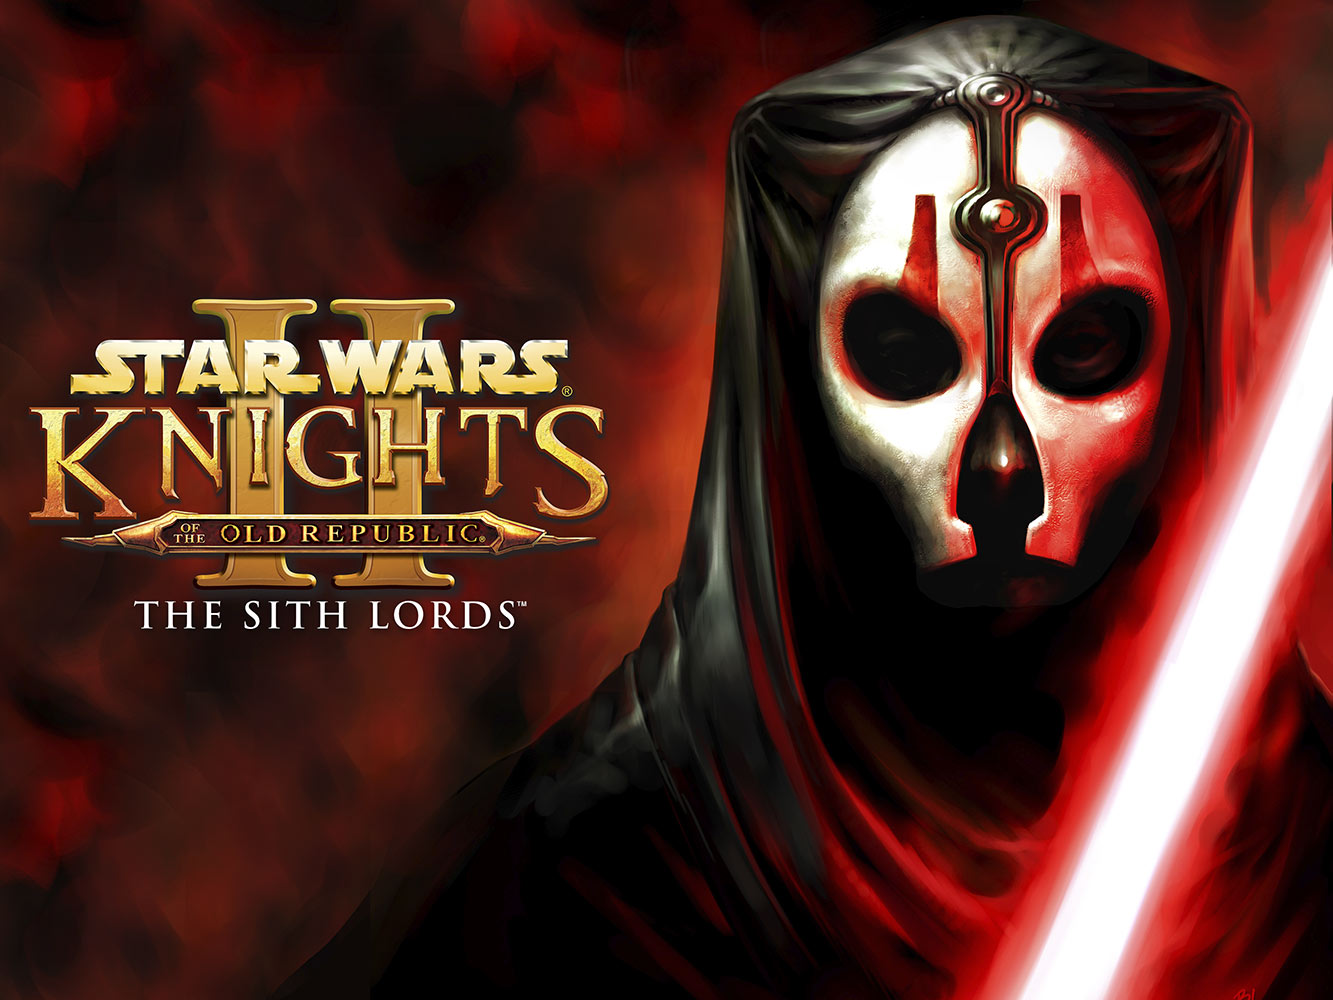 Star Wars: Knights of the Old Republic II — The Sith Lords